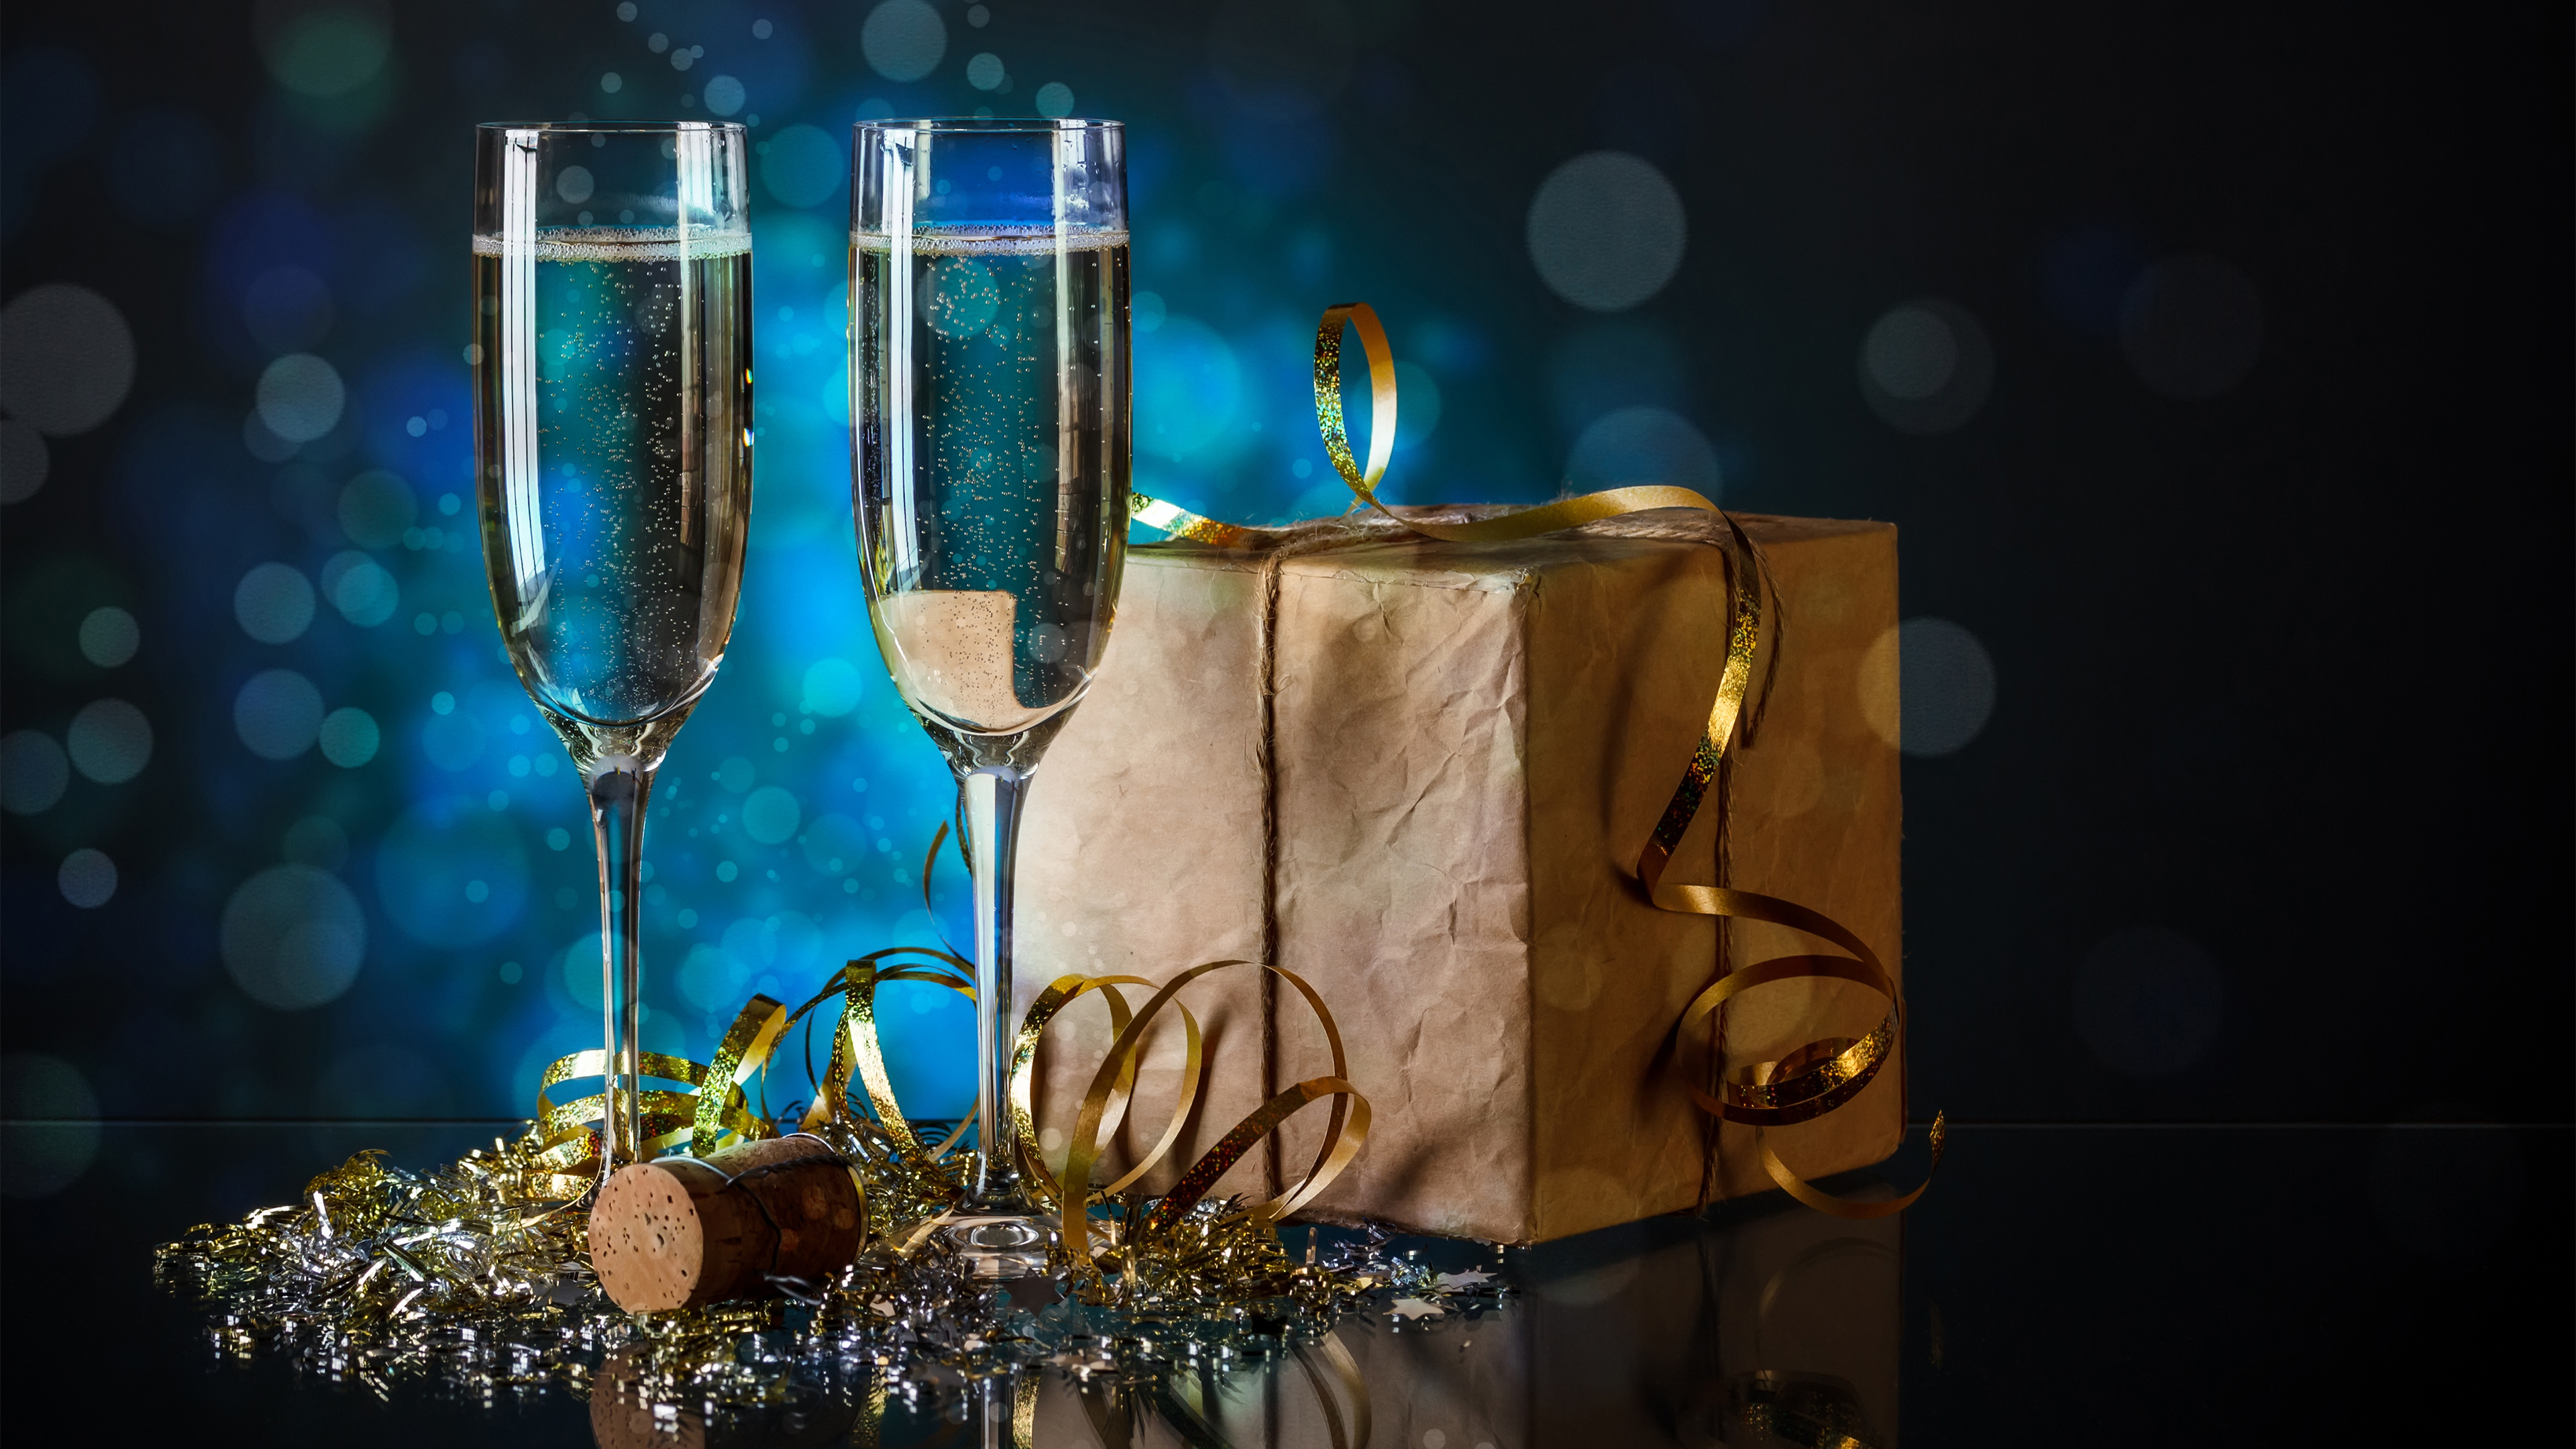 New Year Party Champagne and Gift Box 4k Wallpaper